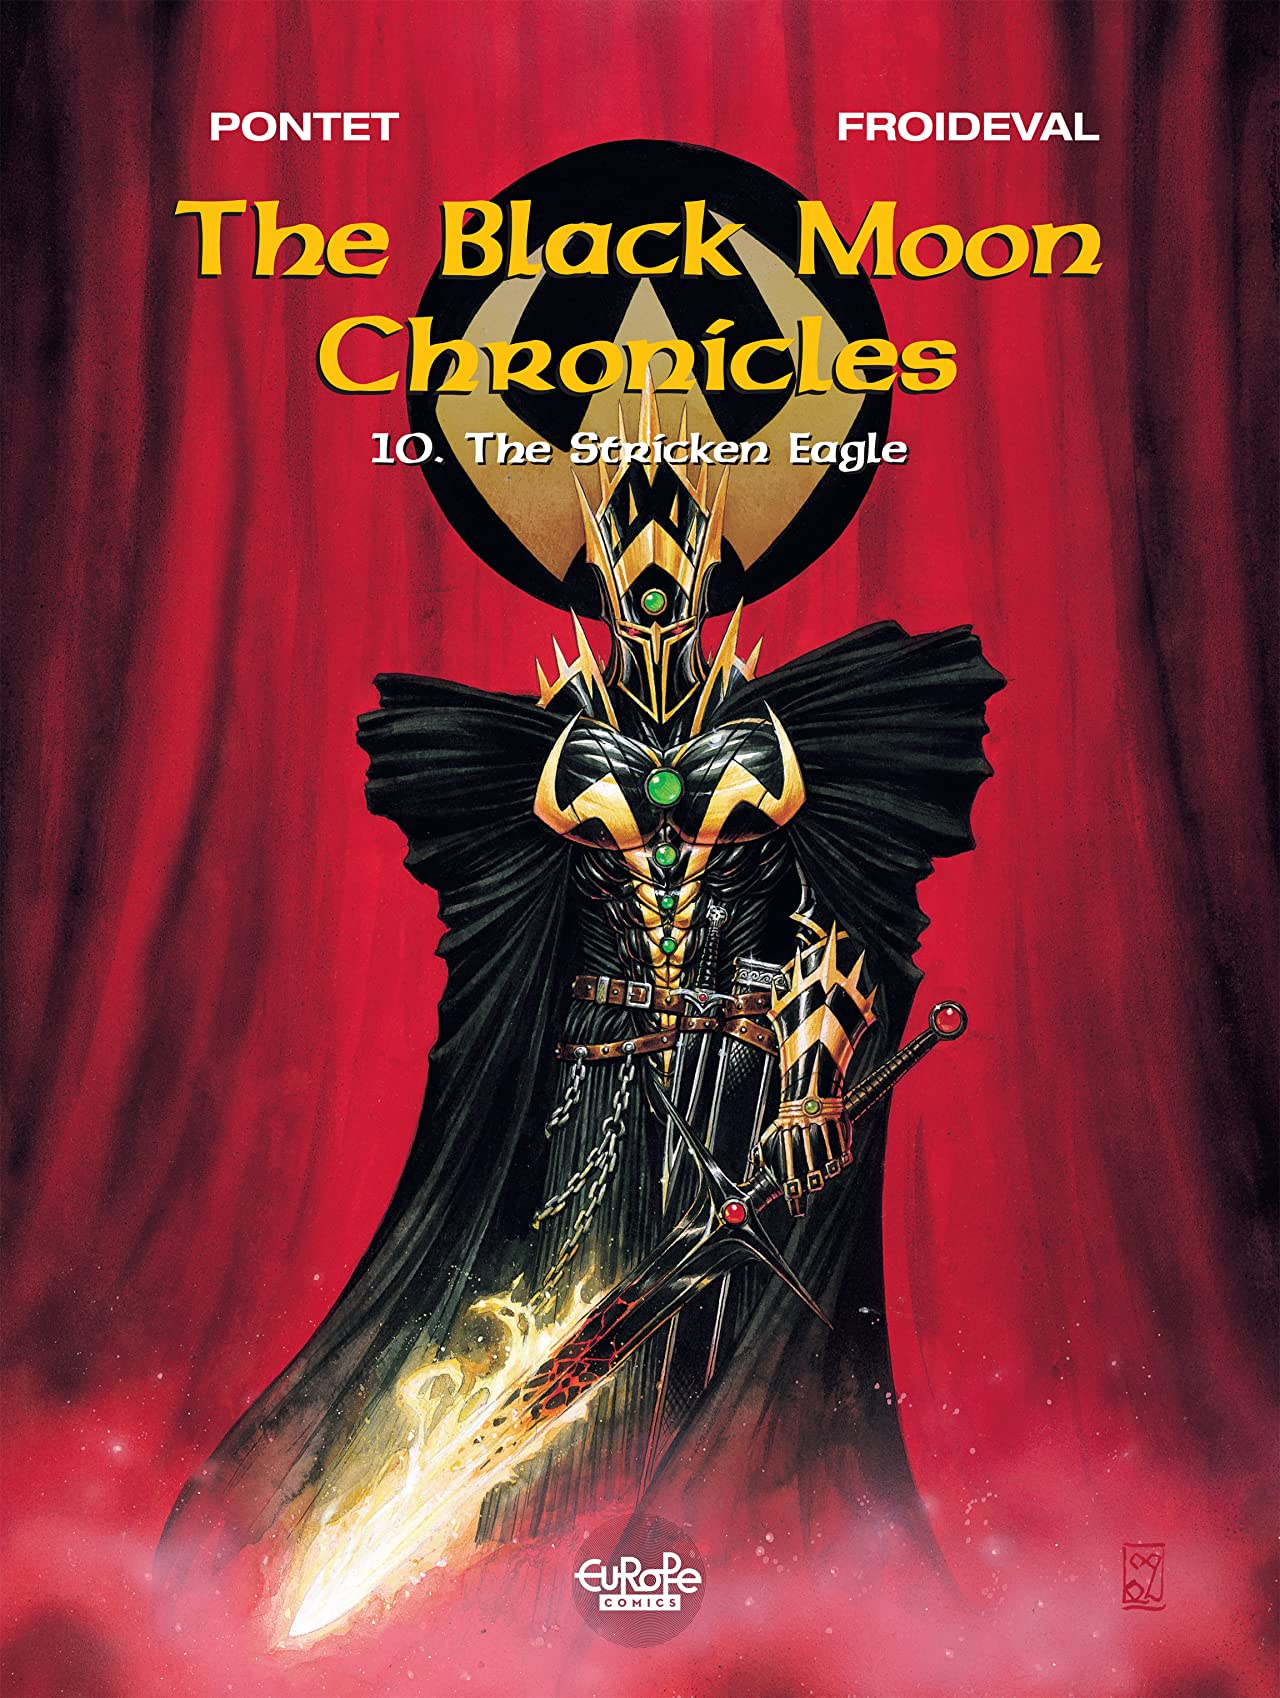 The Black Moon Chronicles Vol. 10: The Stricken Eagle